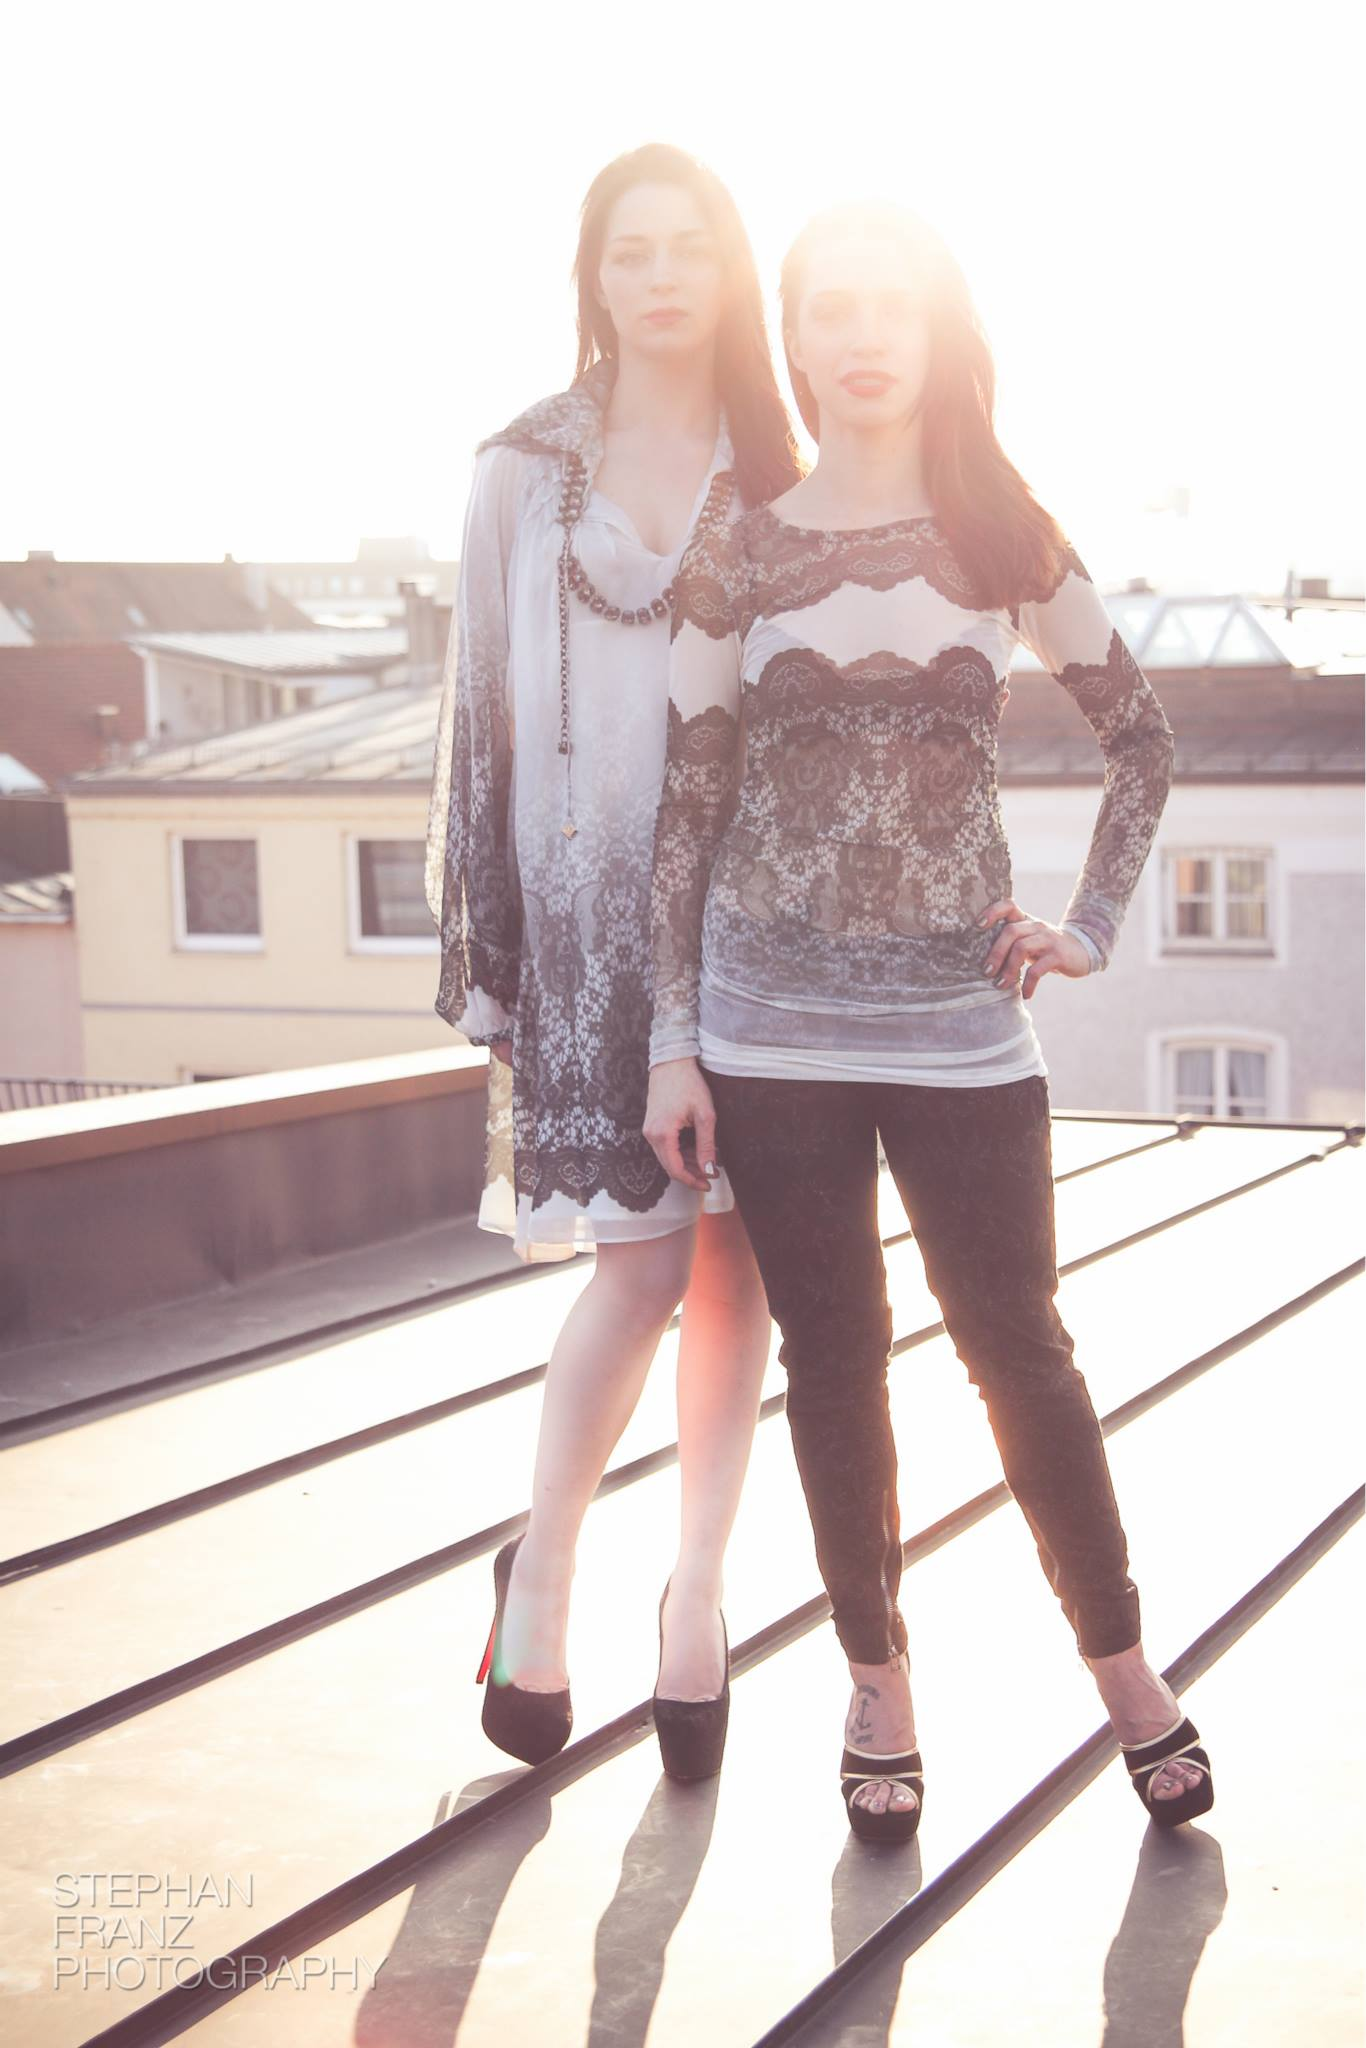 Yousefy Rooftoop Fashion Shooting 2014 - Stephan Franz Photography